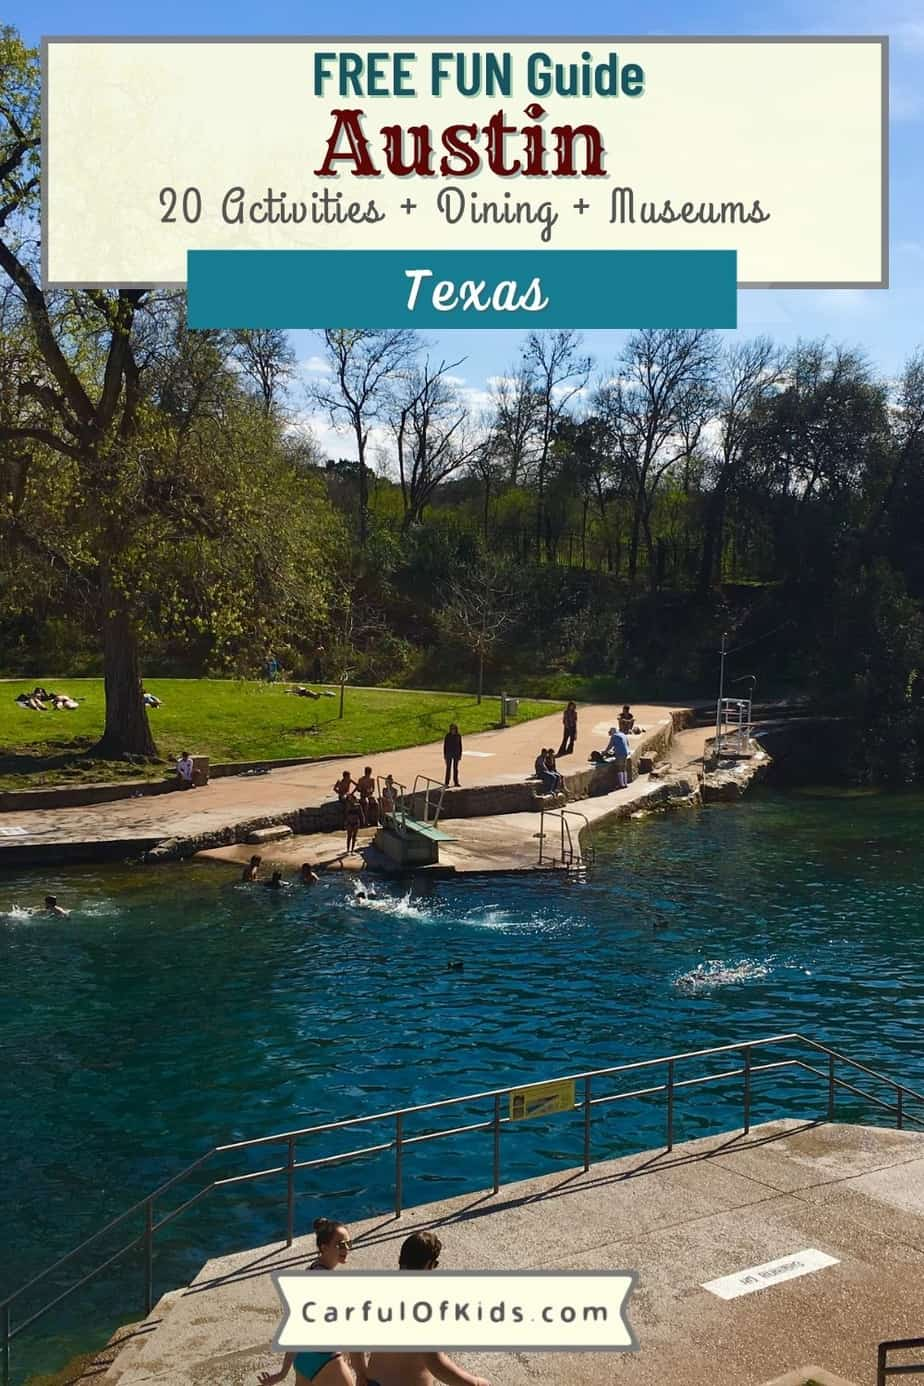 Austin is the FUN capital of Texas. Get your list of must dos like murals, best tacos, swimming holes along with top museums and best BBQ places. Best things to do in Austin Texas   Where to go in Austin Texas #ATX #Austin